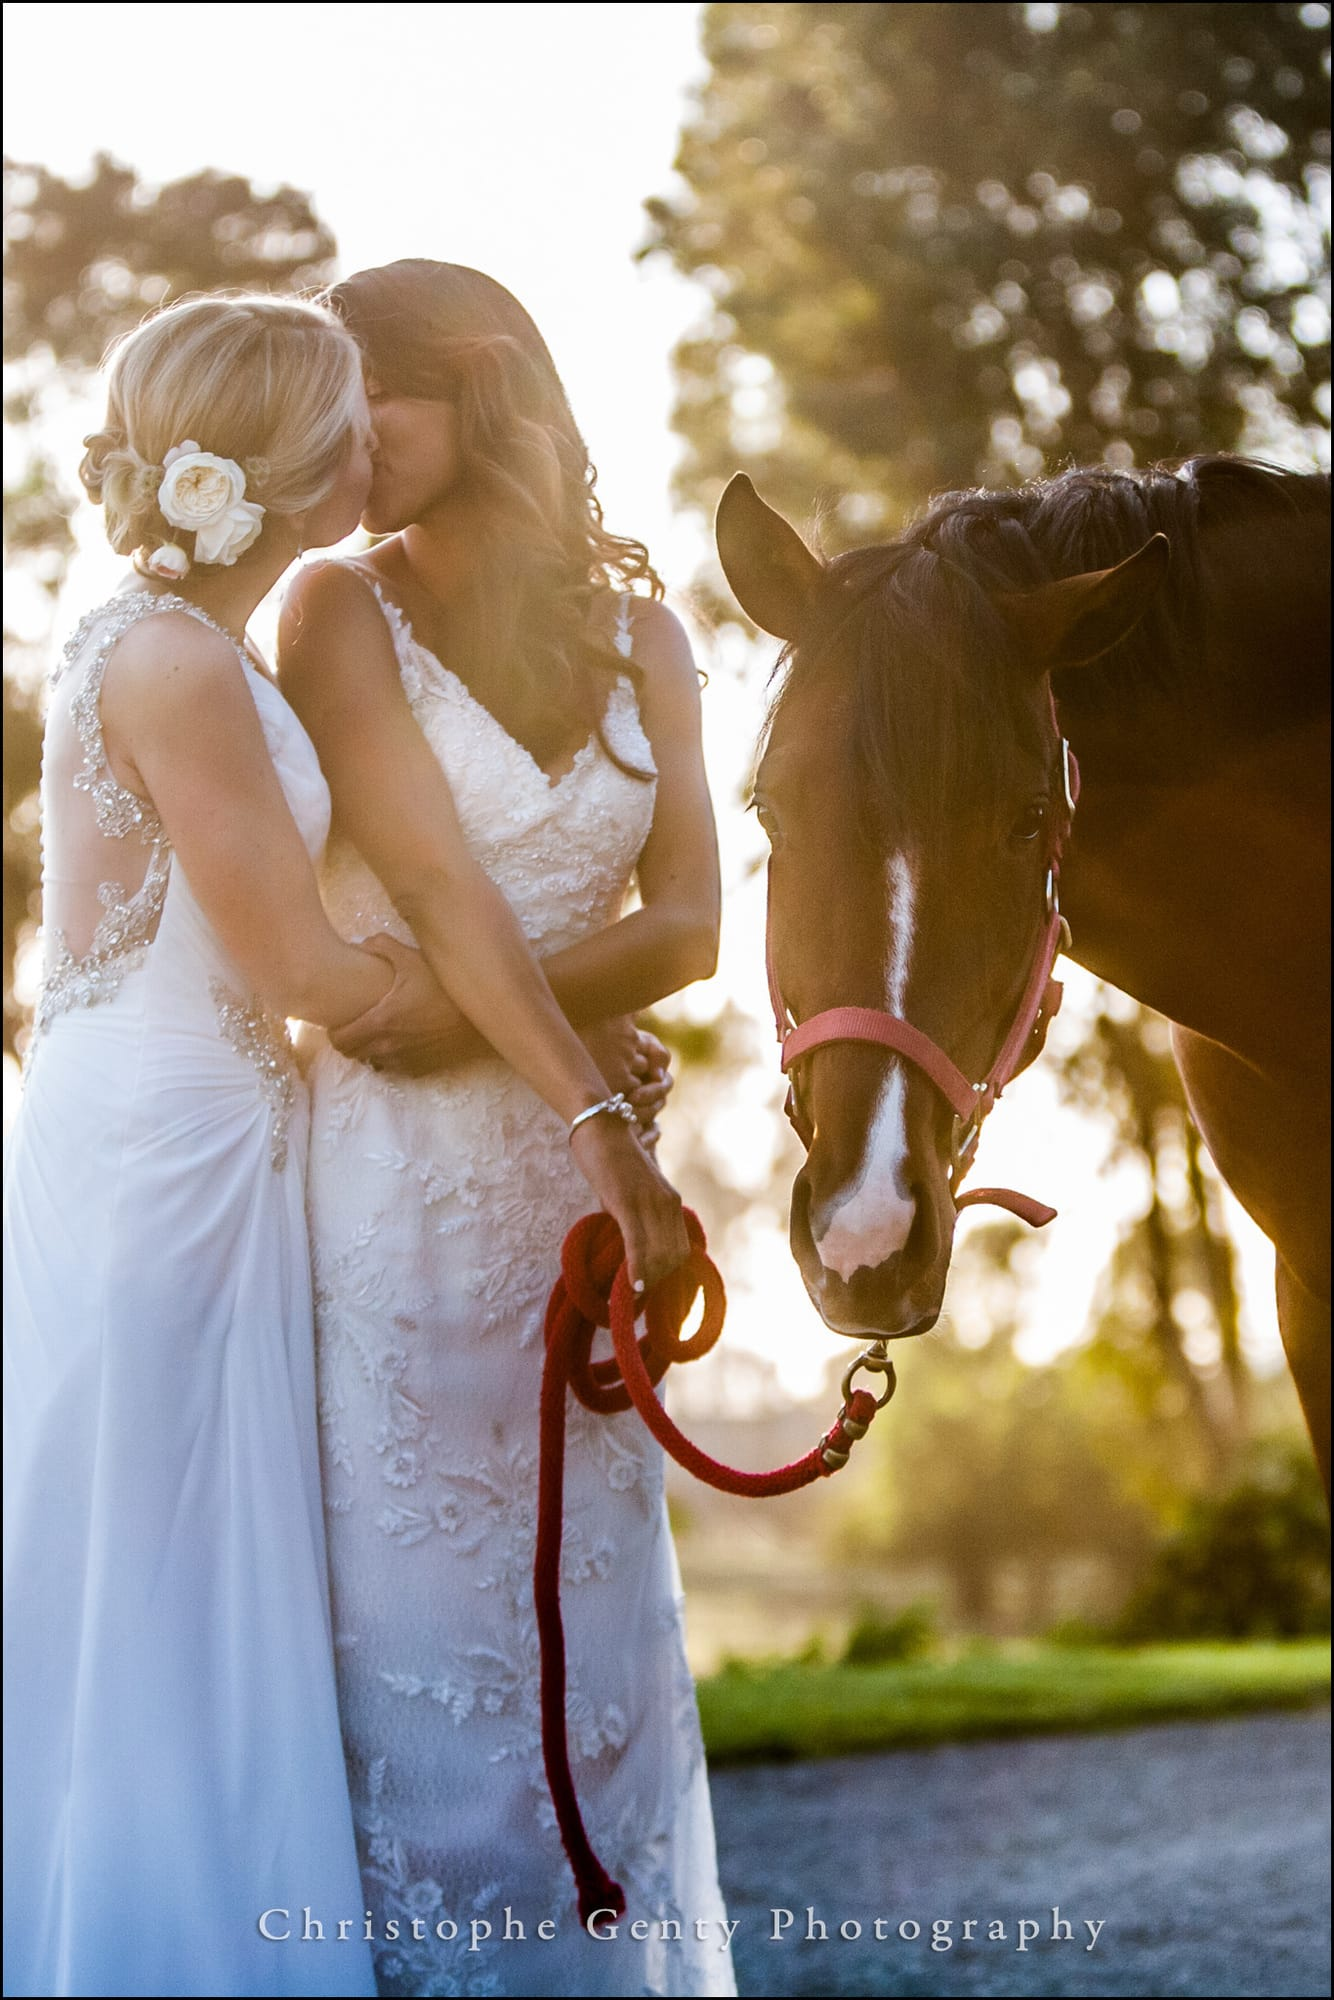 Wedding Photography at The Flying Cloud Ranch in Petaluma, CA